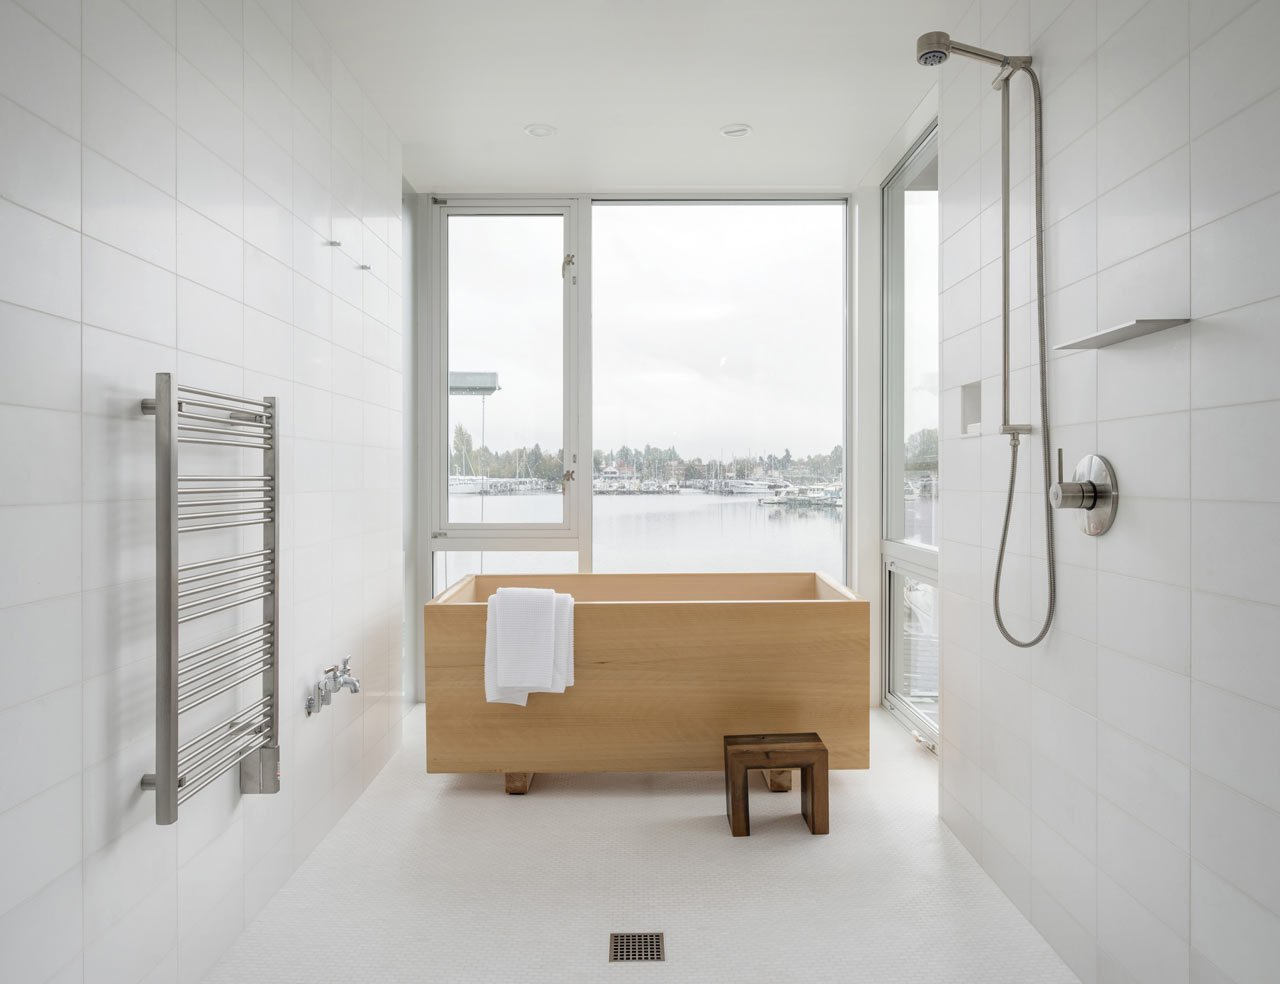 Overlooking Portage Bay in Seattle, this house was designed by Heliotrope Architects for a bachelor who longed for a simple bathroom with a Japanese-style hinoki tub that was installed in front of the windows for the water views.  Photo by Aaron Leitz  SHOWERS by J.P. Rutledge from 10 Minimalist Bathrooms of Our Dreams